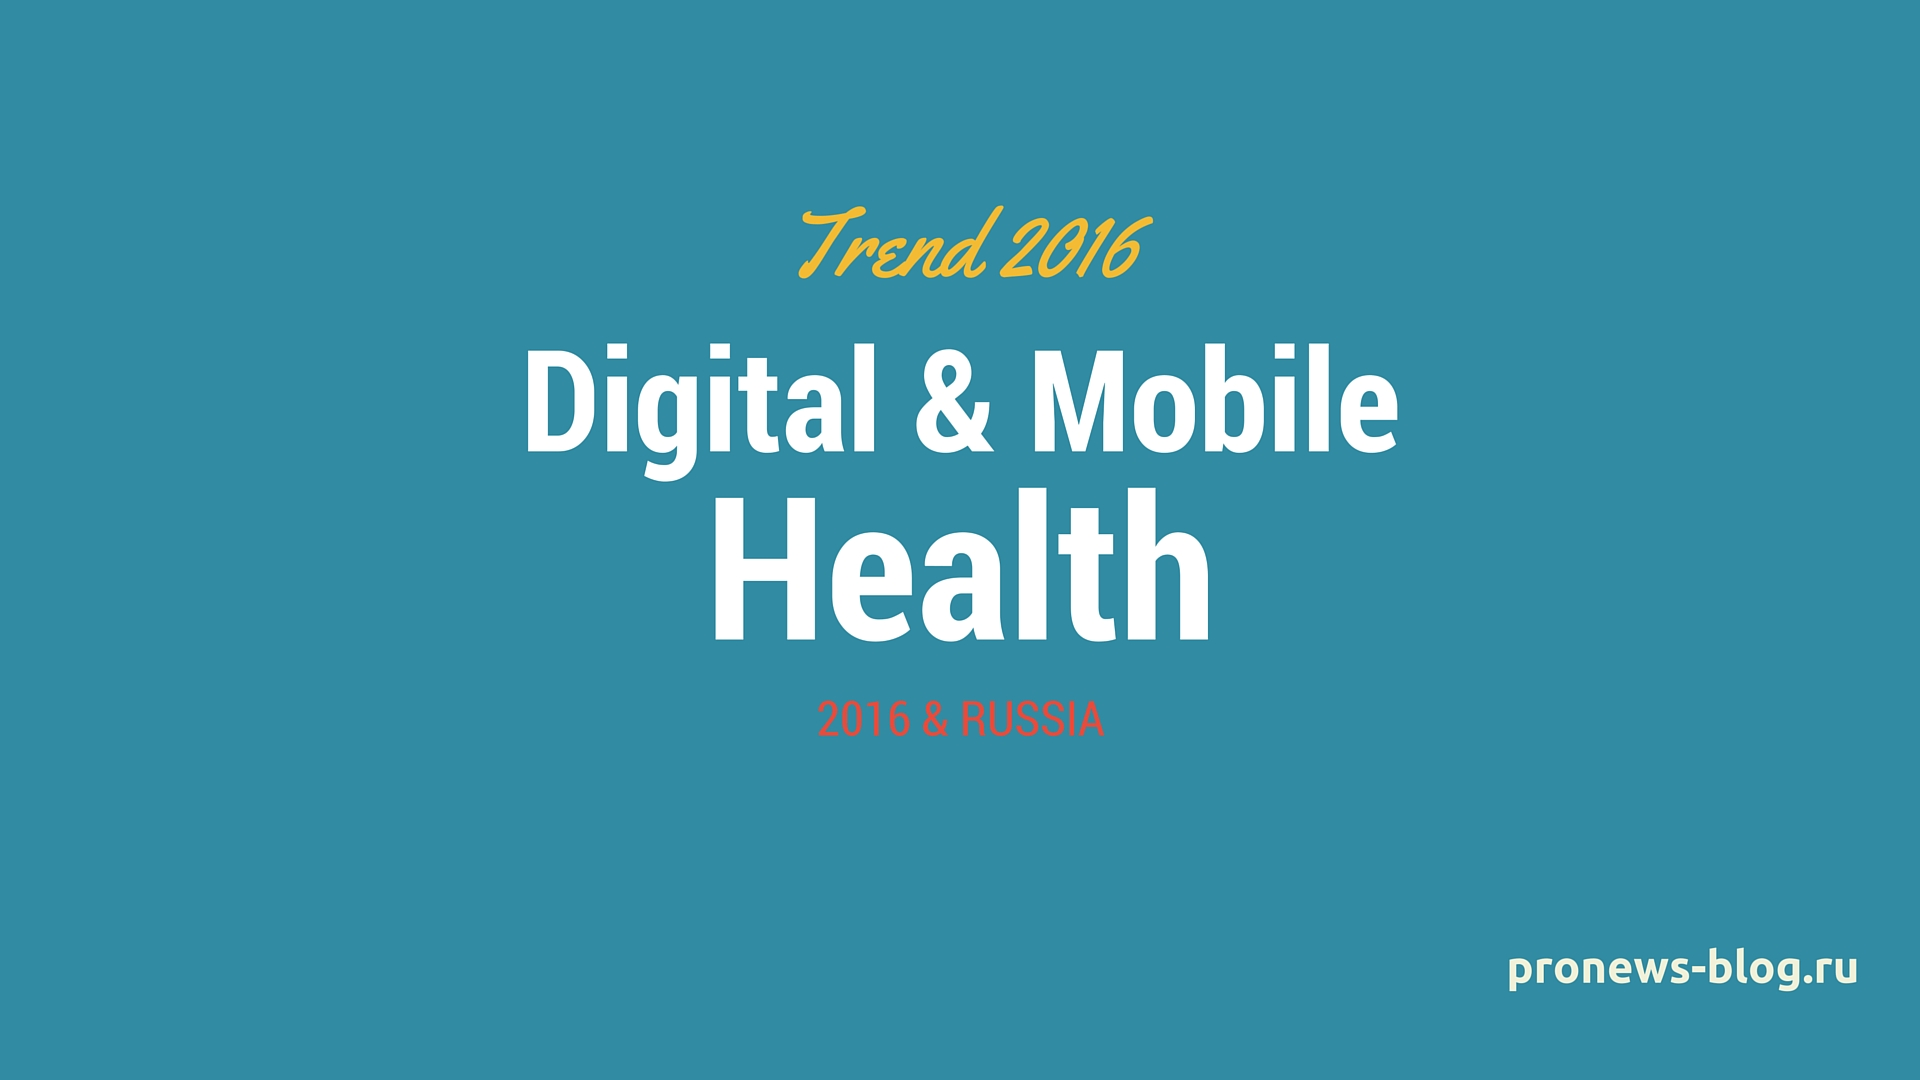 digital & mobile health тренд 2016